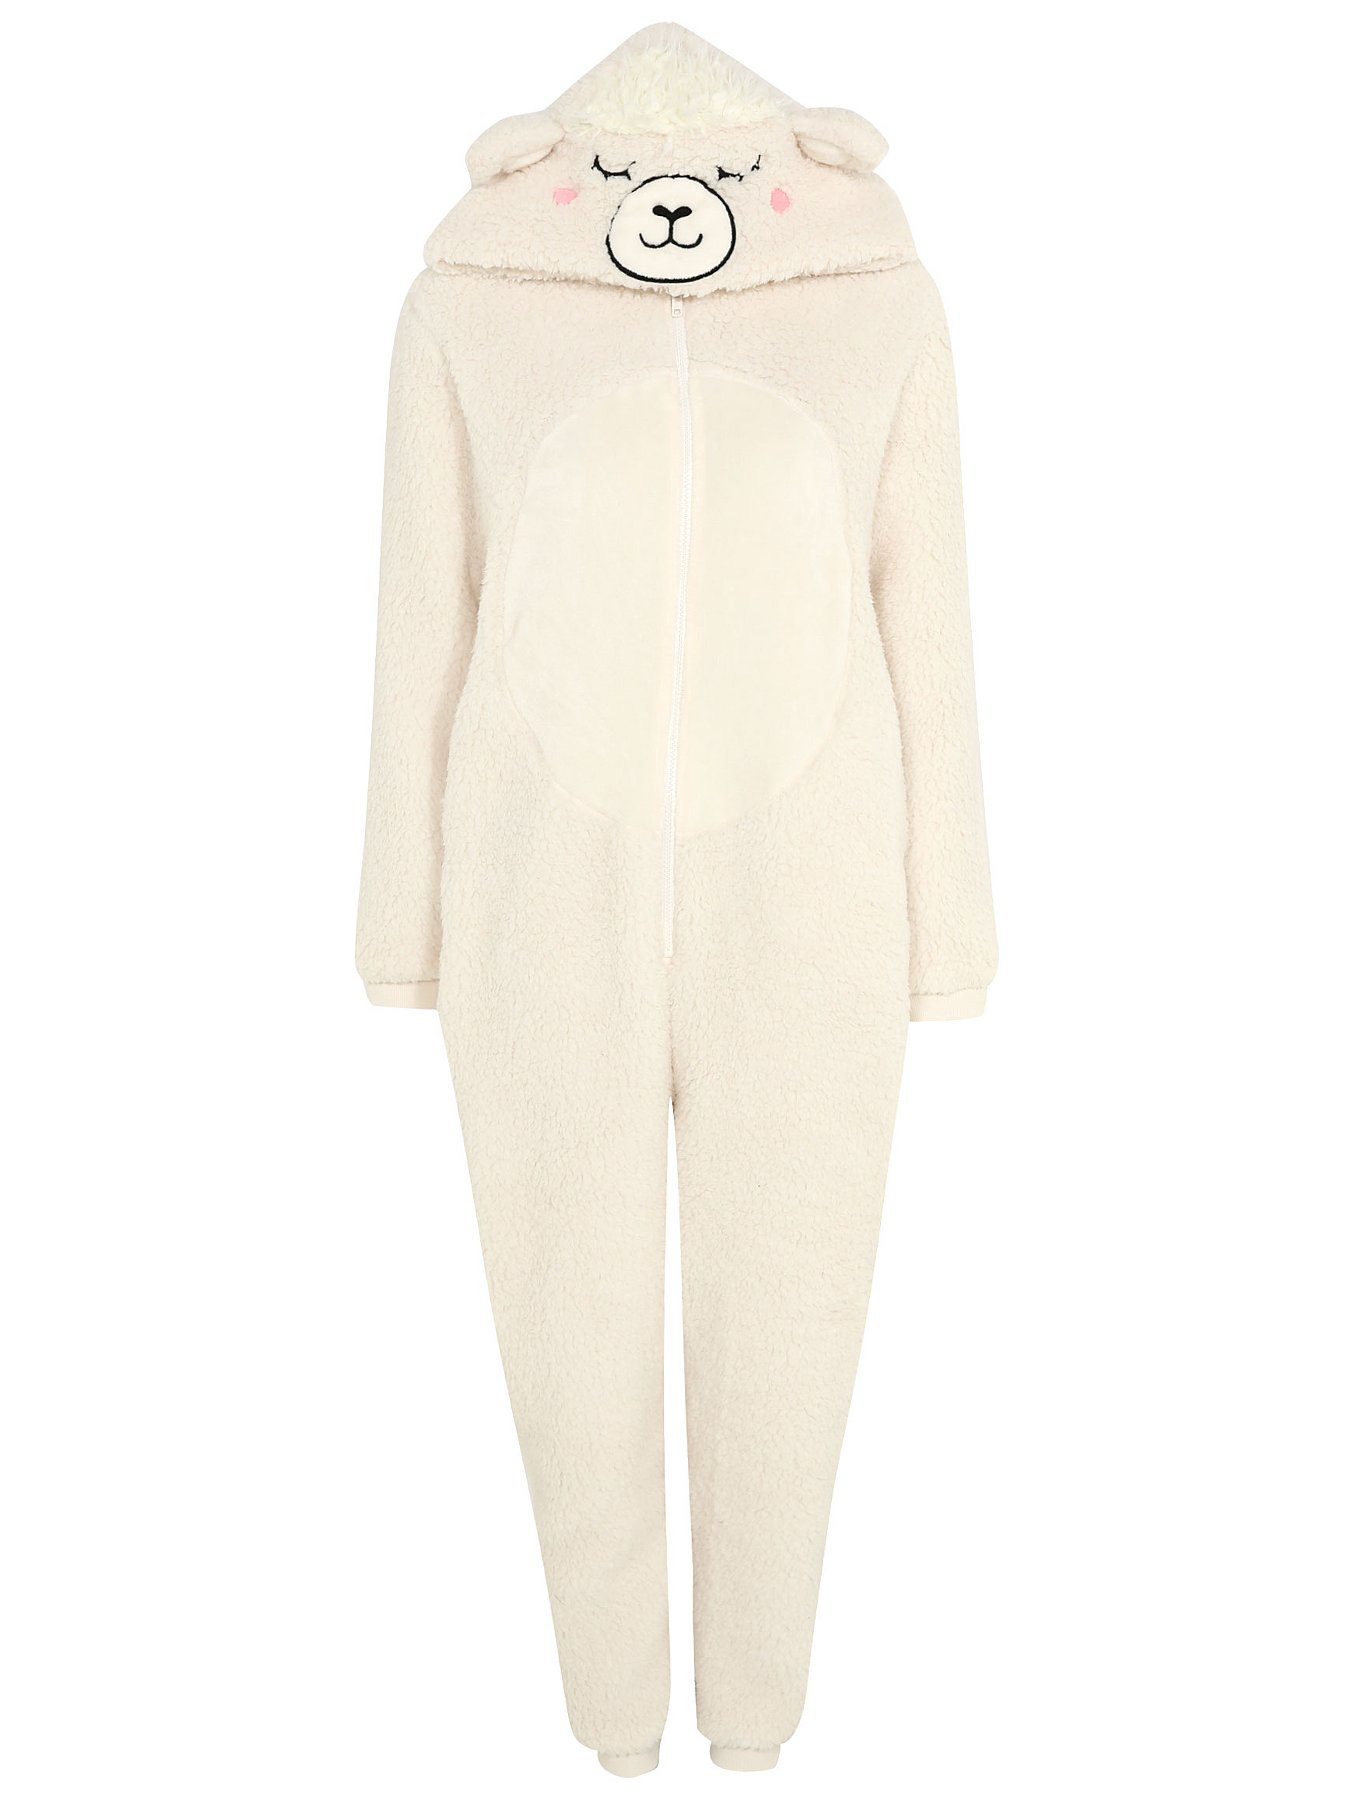 matching in colour real quality how to orders Cream Sheep Borg Onesie